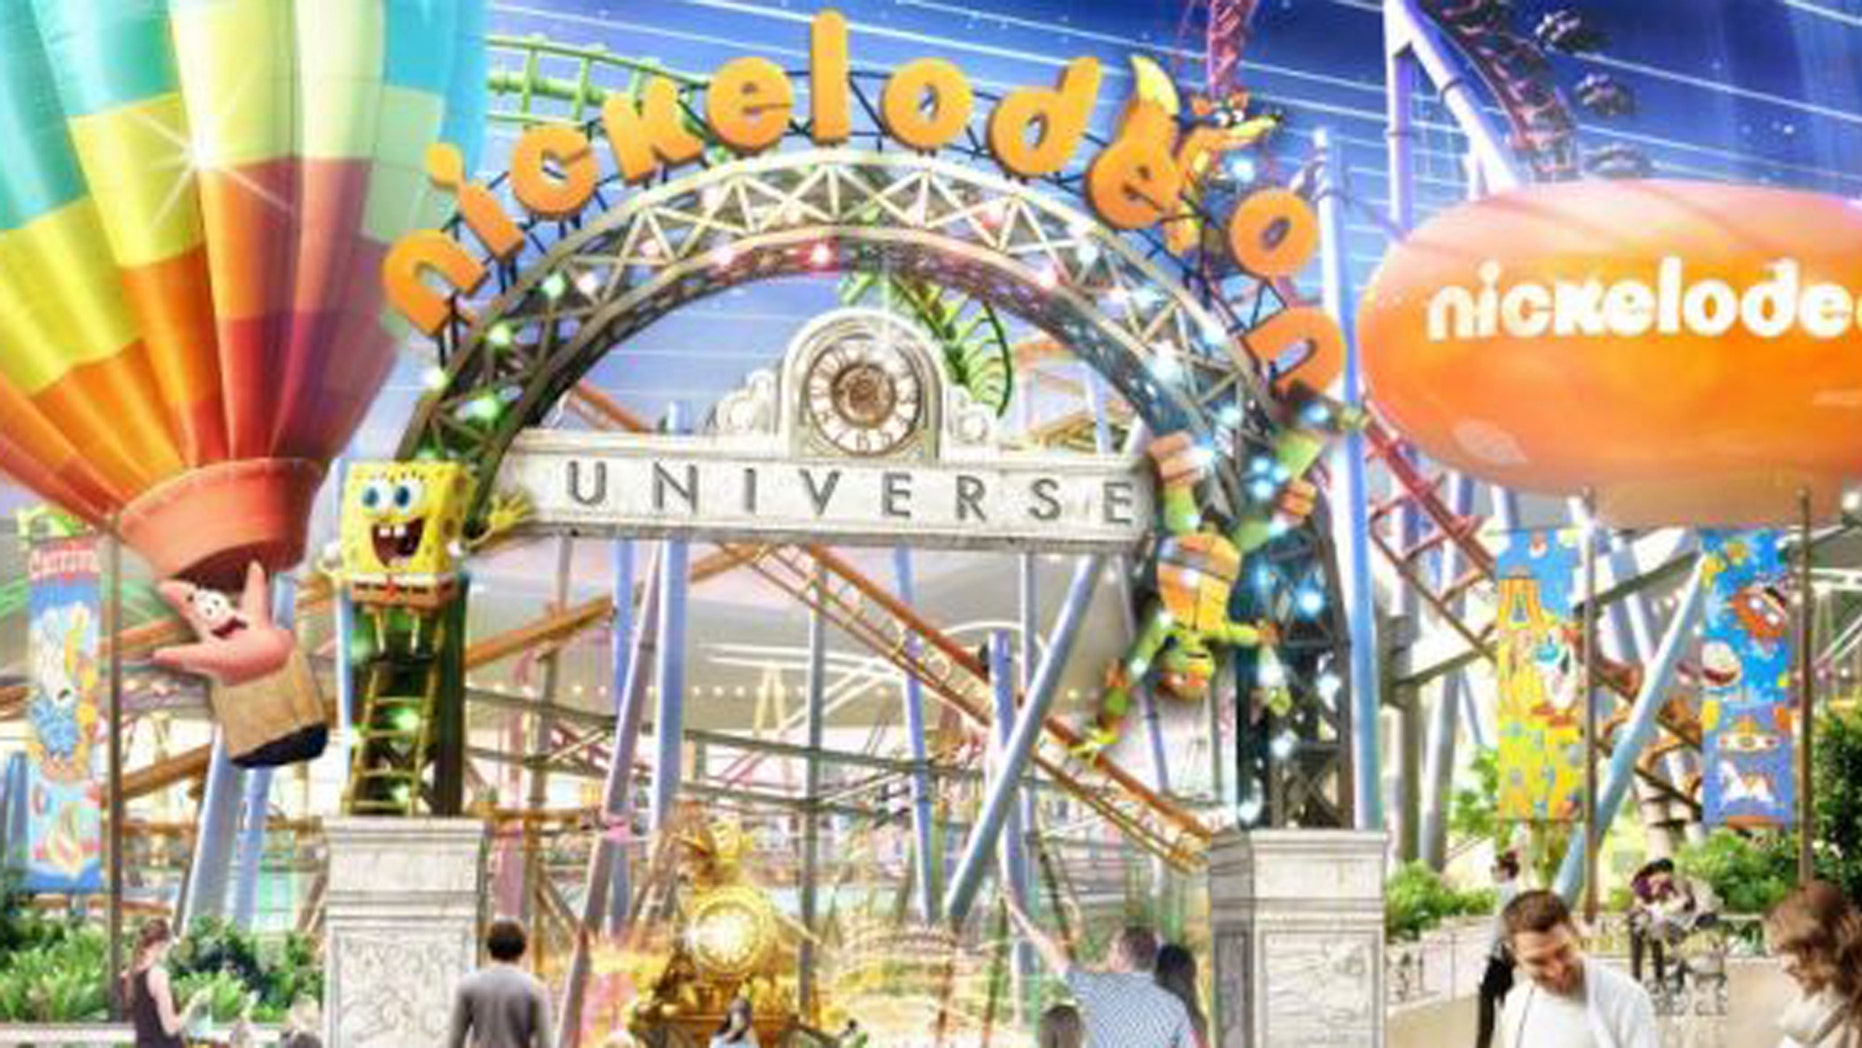 A rendering of the entrance to the new Nickelodeon Universe theme park in Rutherford, N.J.